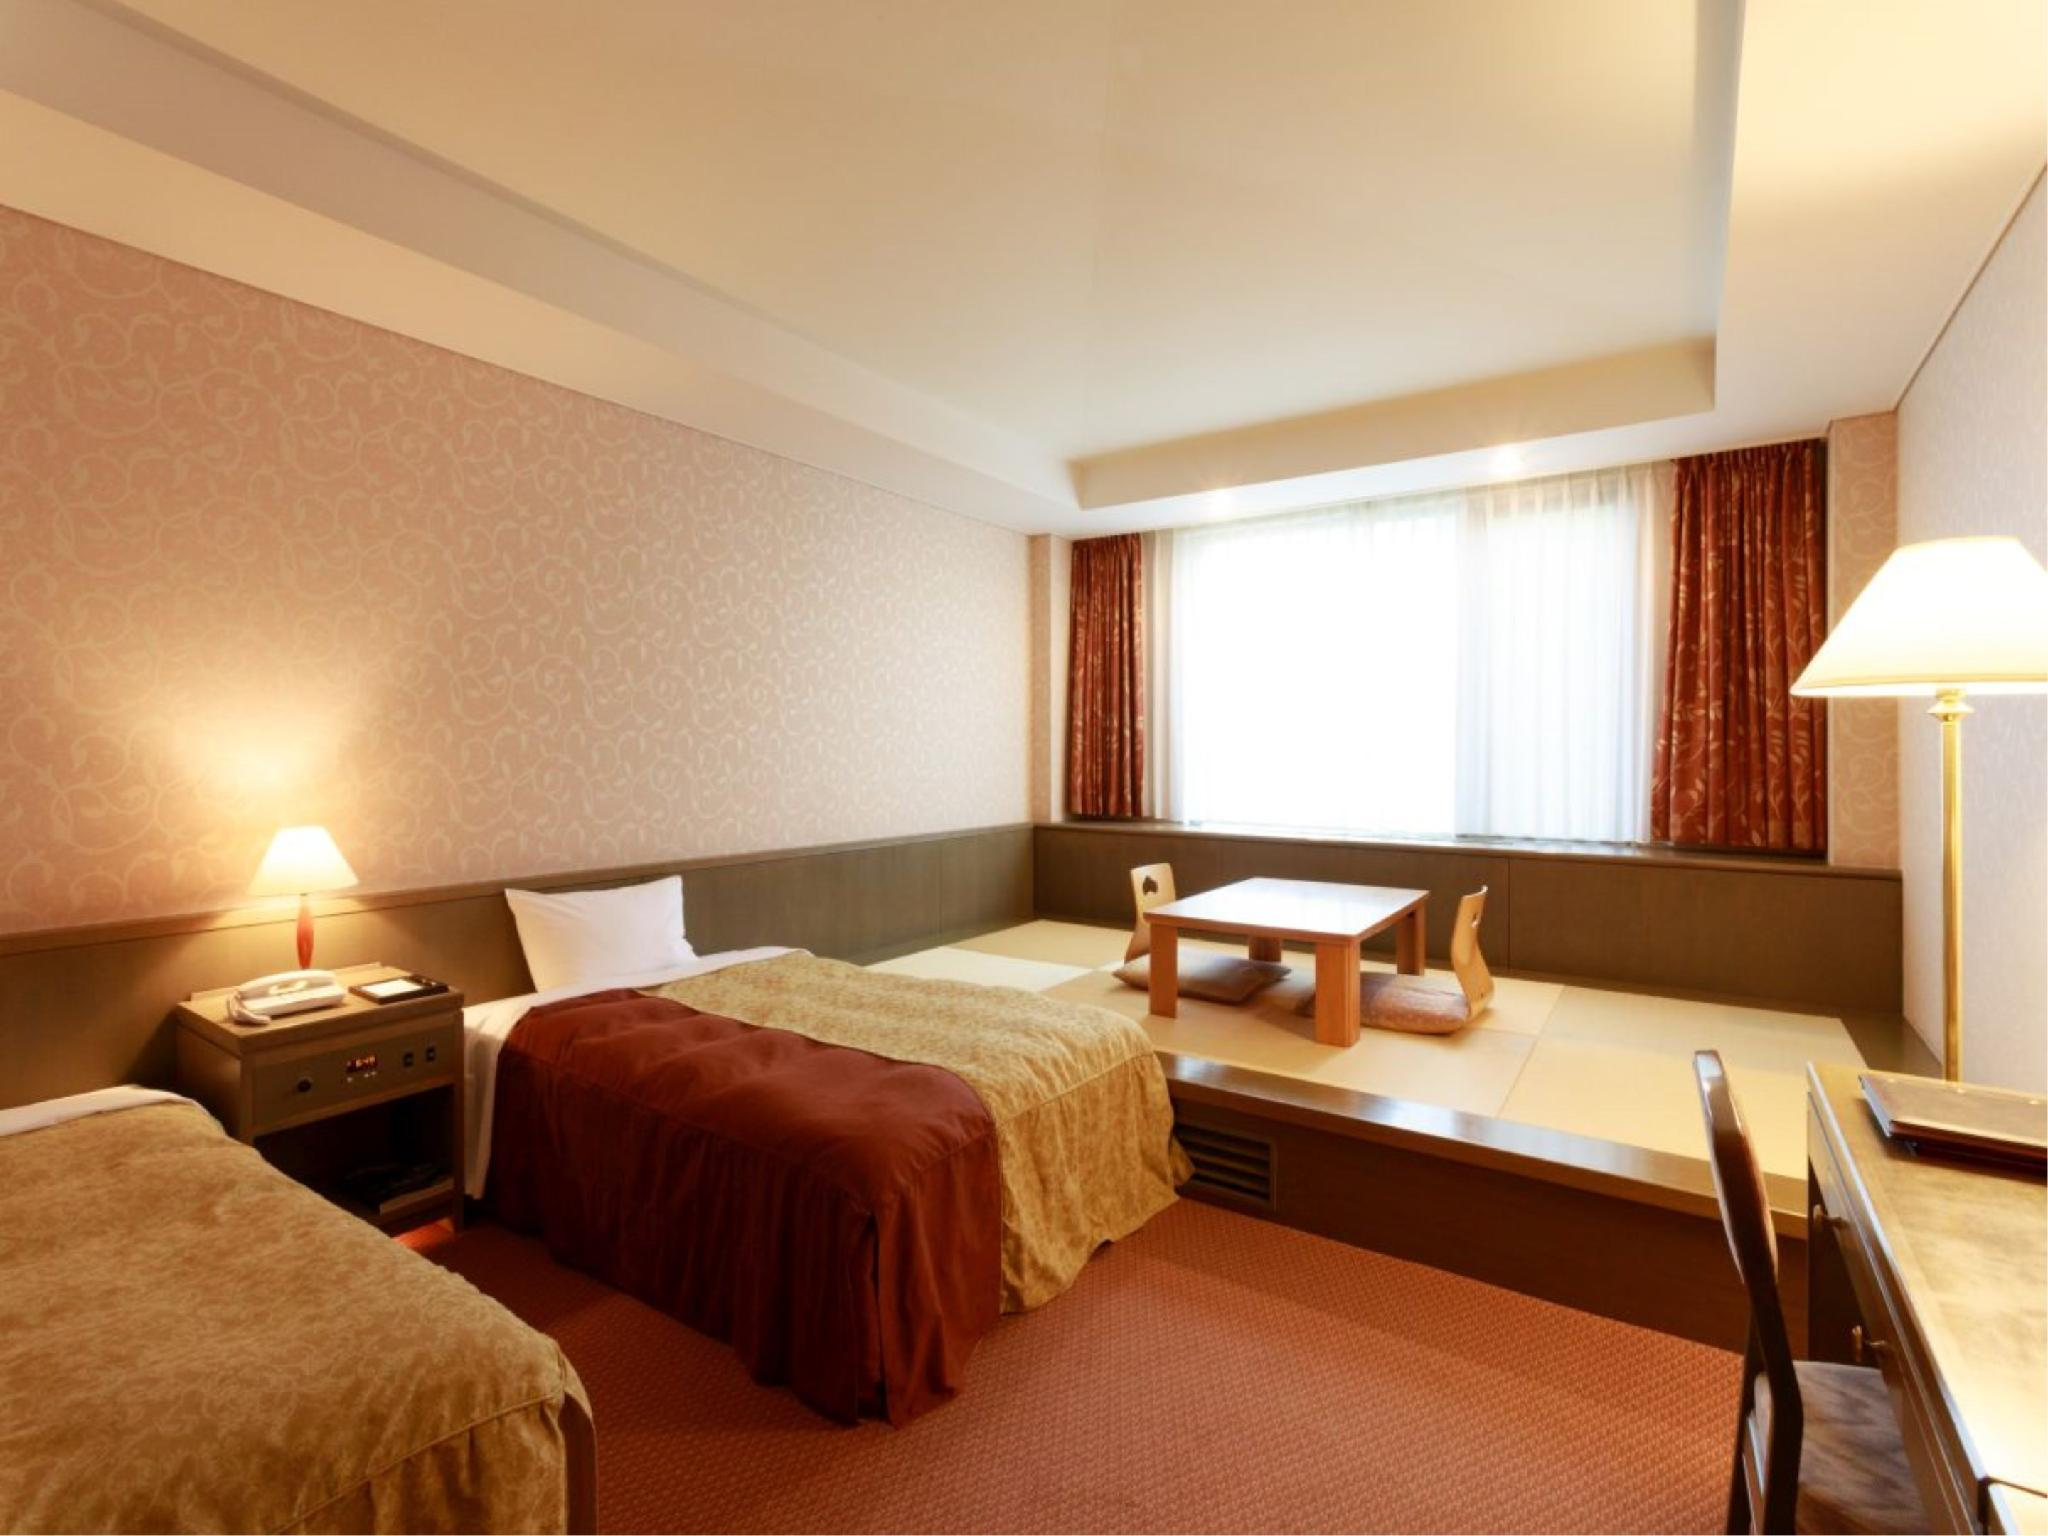 Deluxe Japanese/Western-style Room (2 Beds, Main Building)